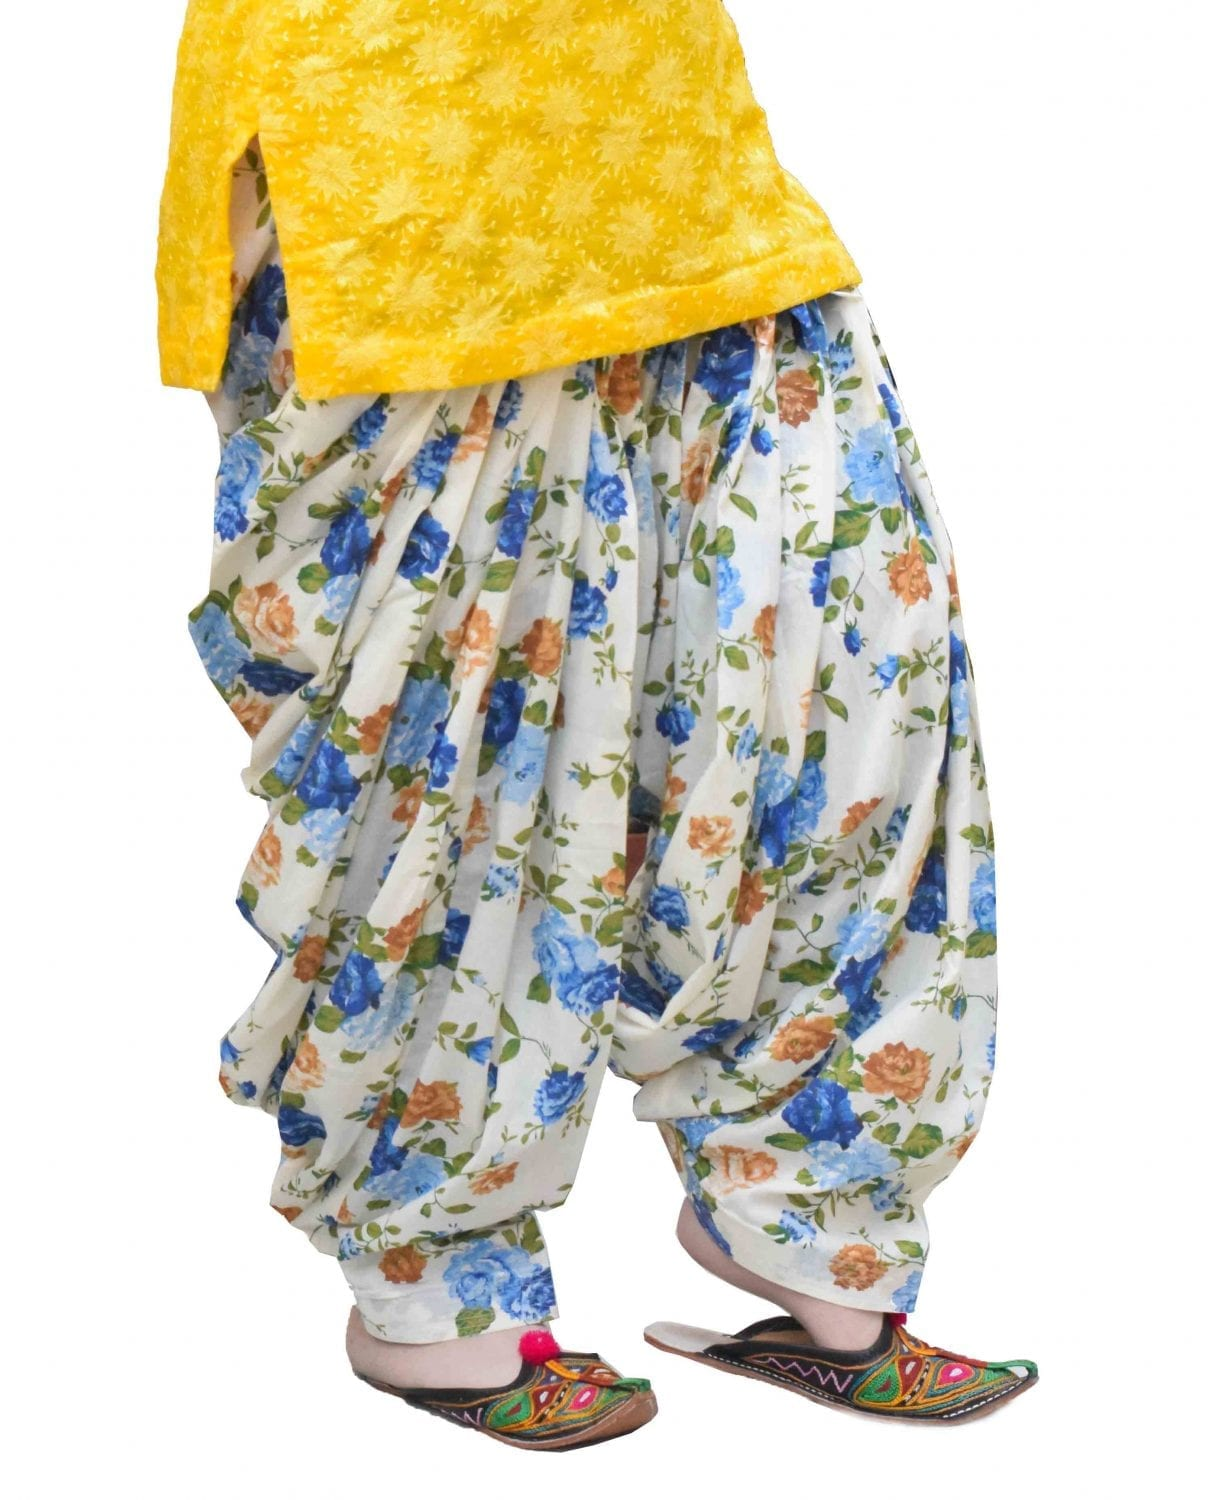 Printed Full Patiala Salwar Limited Edition 100% Pure Cotton PPS271 1